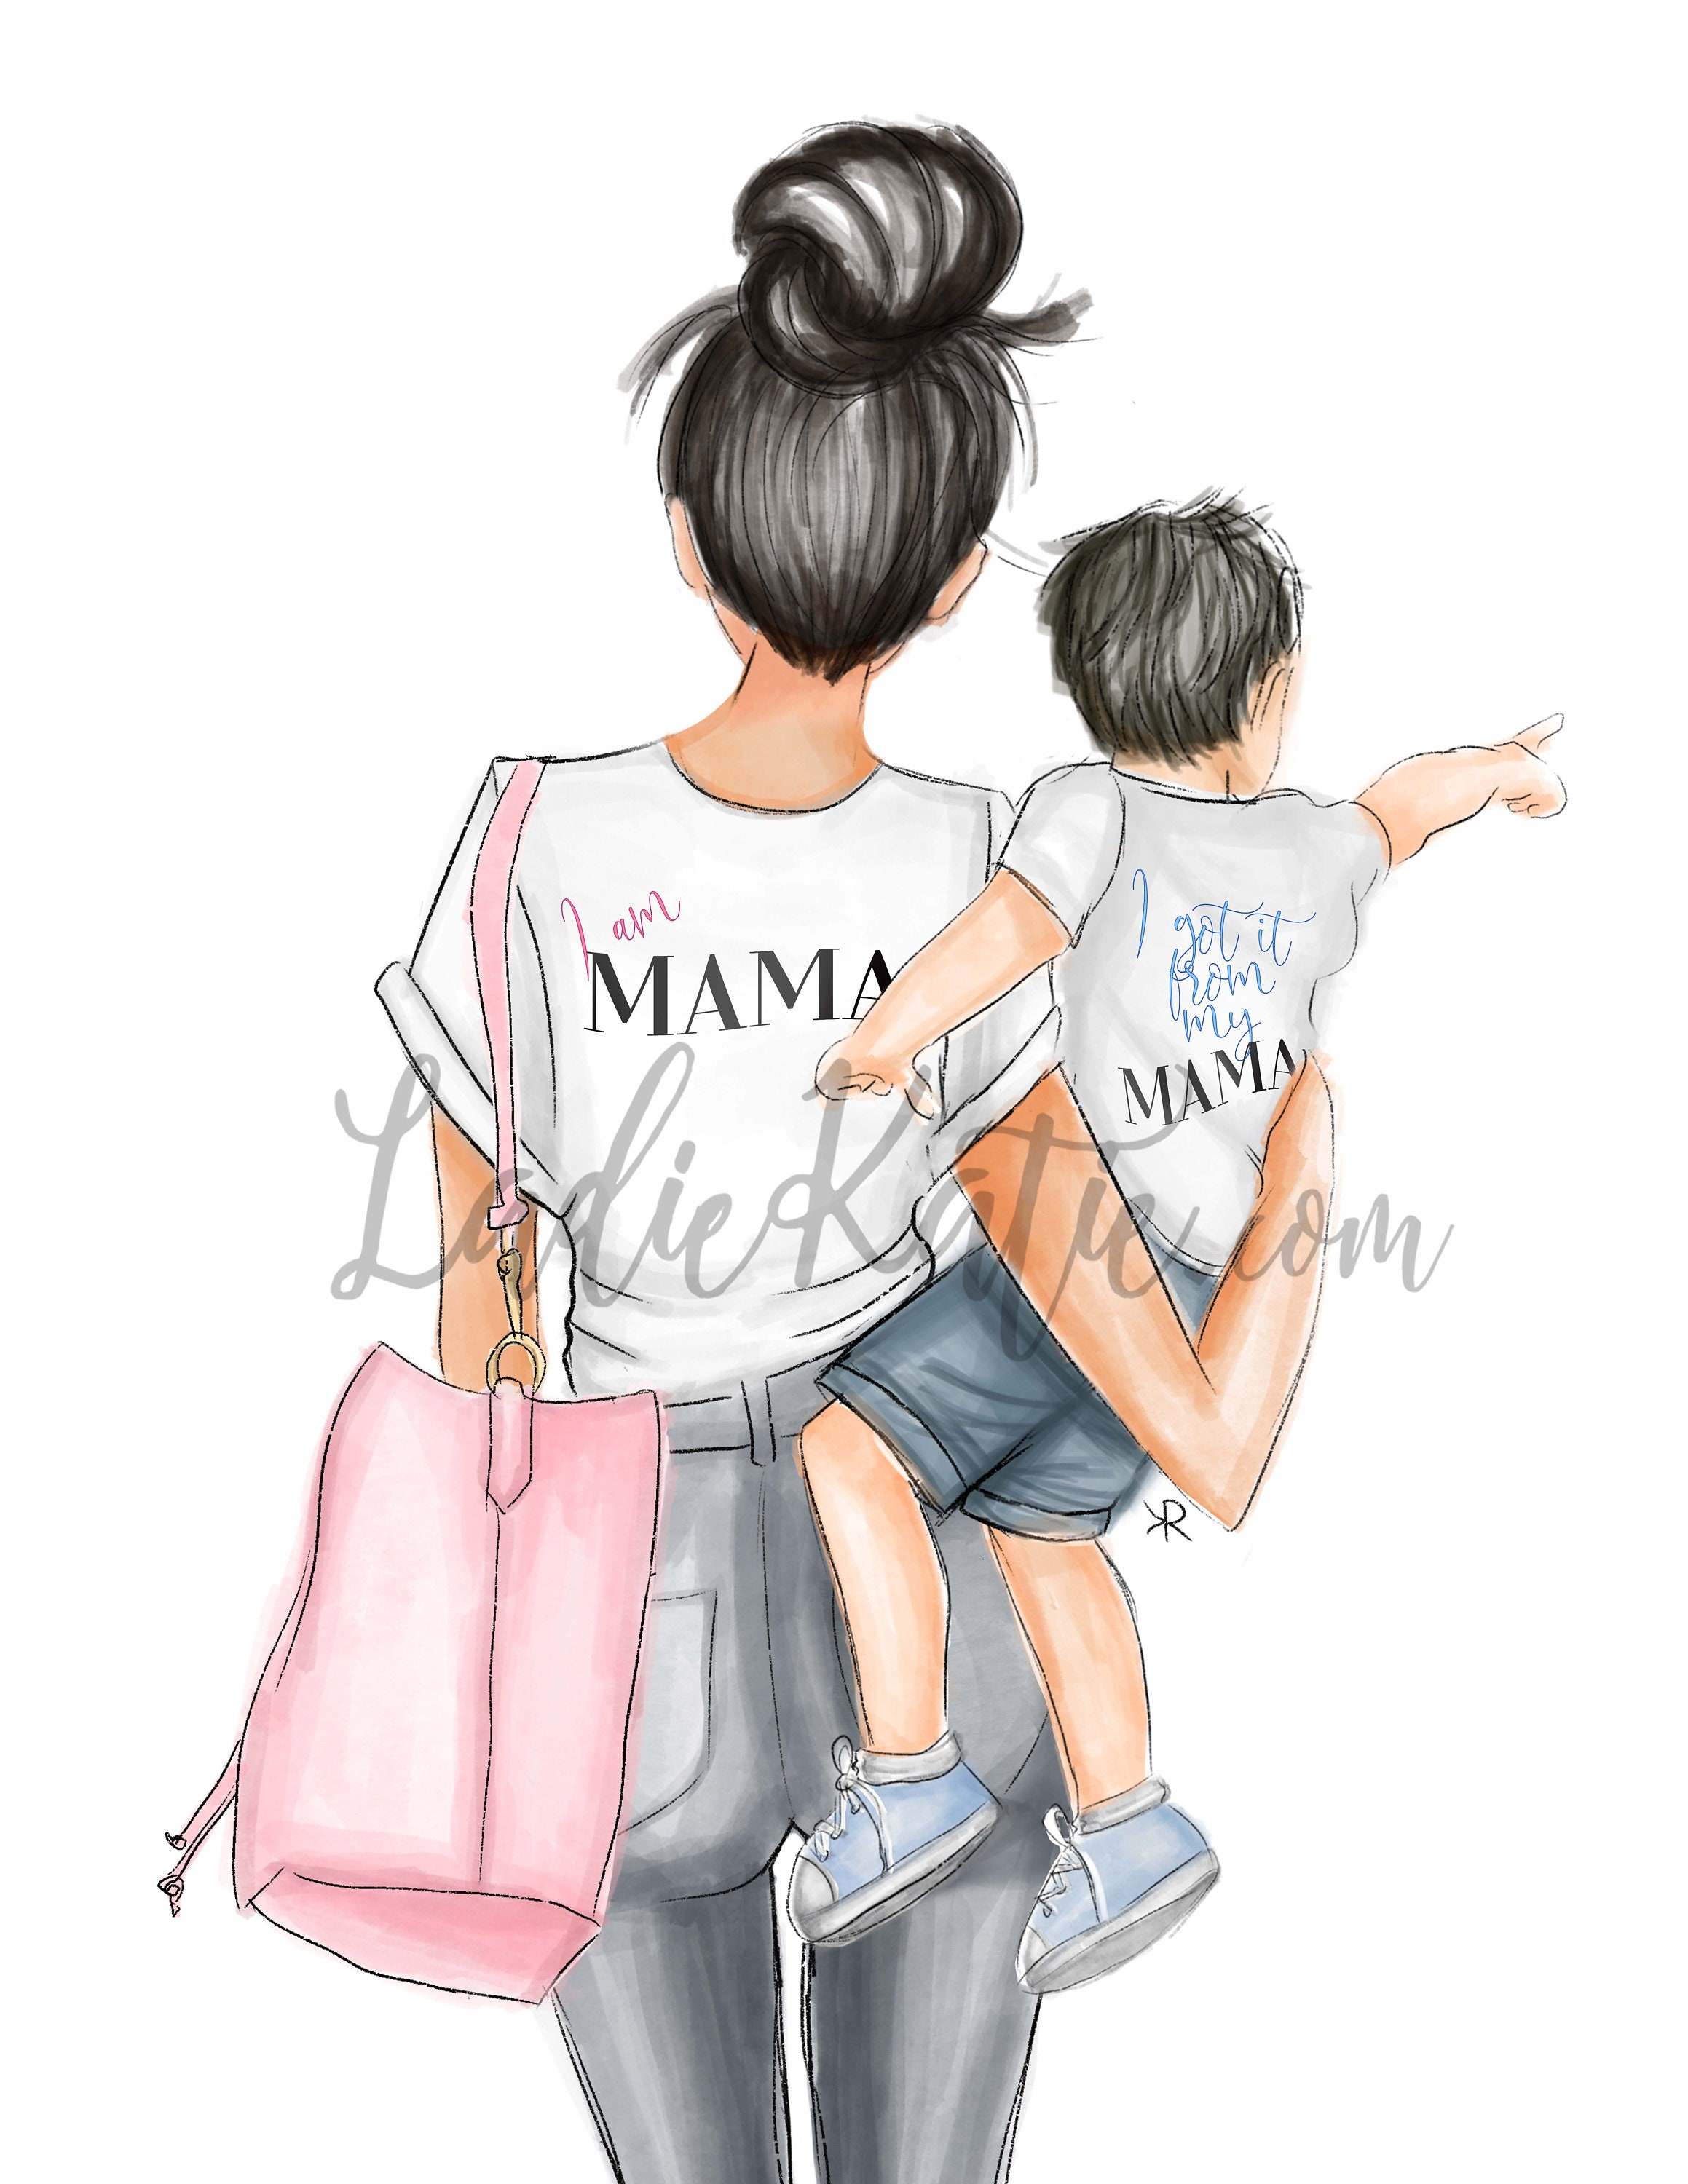 Cool Mom with Little Boy Mother/'s Day Gifts | Mother/'s Day bag | Mother/'s Day  | Mom Bag Bag By Melsy/'s Illustrations BrunetteBlonde